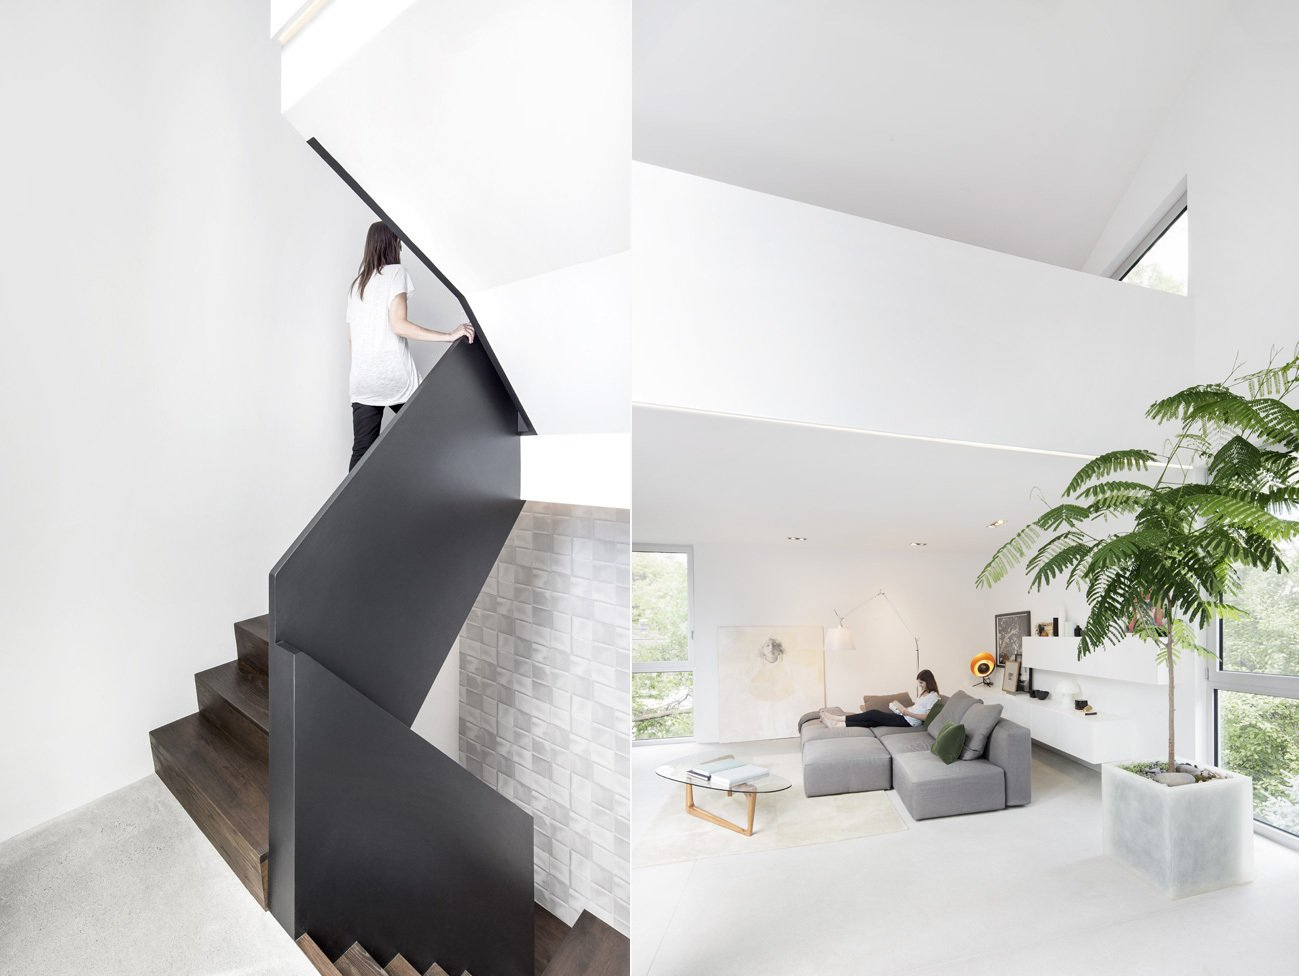 """Balaban designed the staircase to read like a piece of furniture. It features handsome wood steps and a metal railing. Balaban flipped the traditional hierarchy of the house and placed bedrooms on the ground floor and living spaces on the second story. """"We ran through a lot of design iterations during the concept phase—some of them were a bit off the wall—before finally settling on the form and the concept of inversing the spaces and digging out the courtyard from the center of the house,"""" Balaban says. """"We all went through a few months of weekly meetings and iterations to fine tune the design and the spaces, choose the materials and settle on the details. We tried just about every combination and permutation of spatial organization and stair configuration possible. The shape of the courtyard also evolved to respond to the spaces moving around. Time was an important and indispensable ingredient in the process!""""  """"The living space is located on the upper floor and it's quite pleasant,"""" Vu says. """"The space is flooded with natural light all year long and has a view of mature trees in the neighborhood—it's stunning. We almost feel like we're in the countryside!""""  Photo 4 of 12 in 11 Modern Stairways That Do Way More Than Just Connect Floors"""